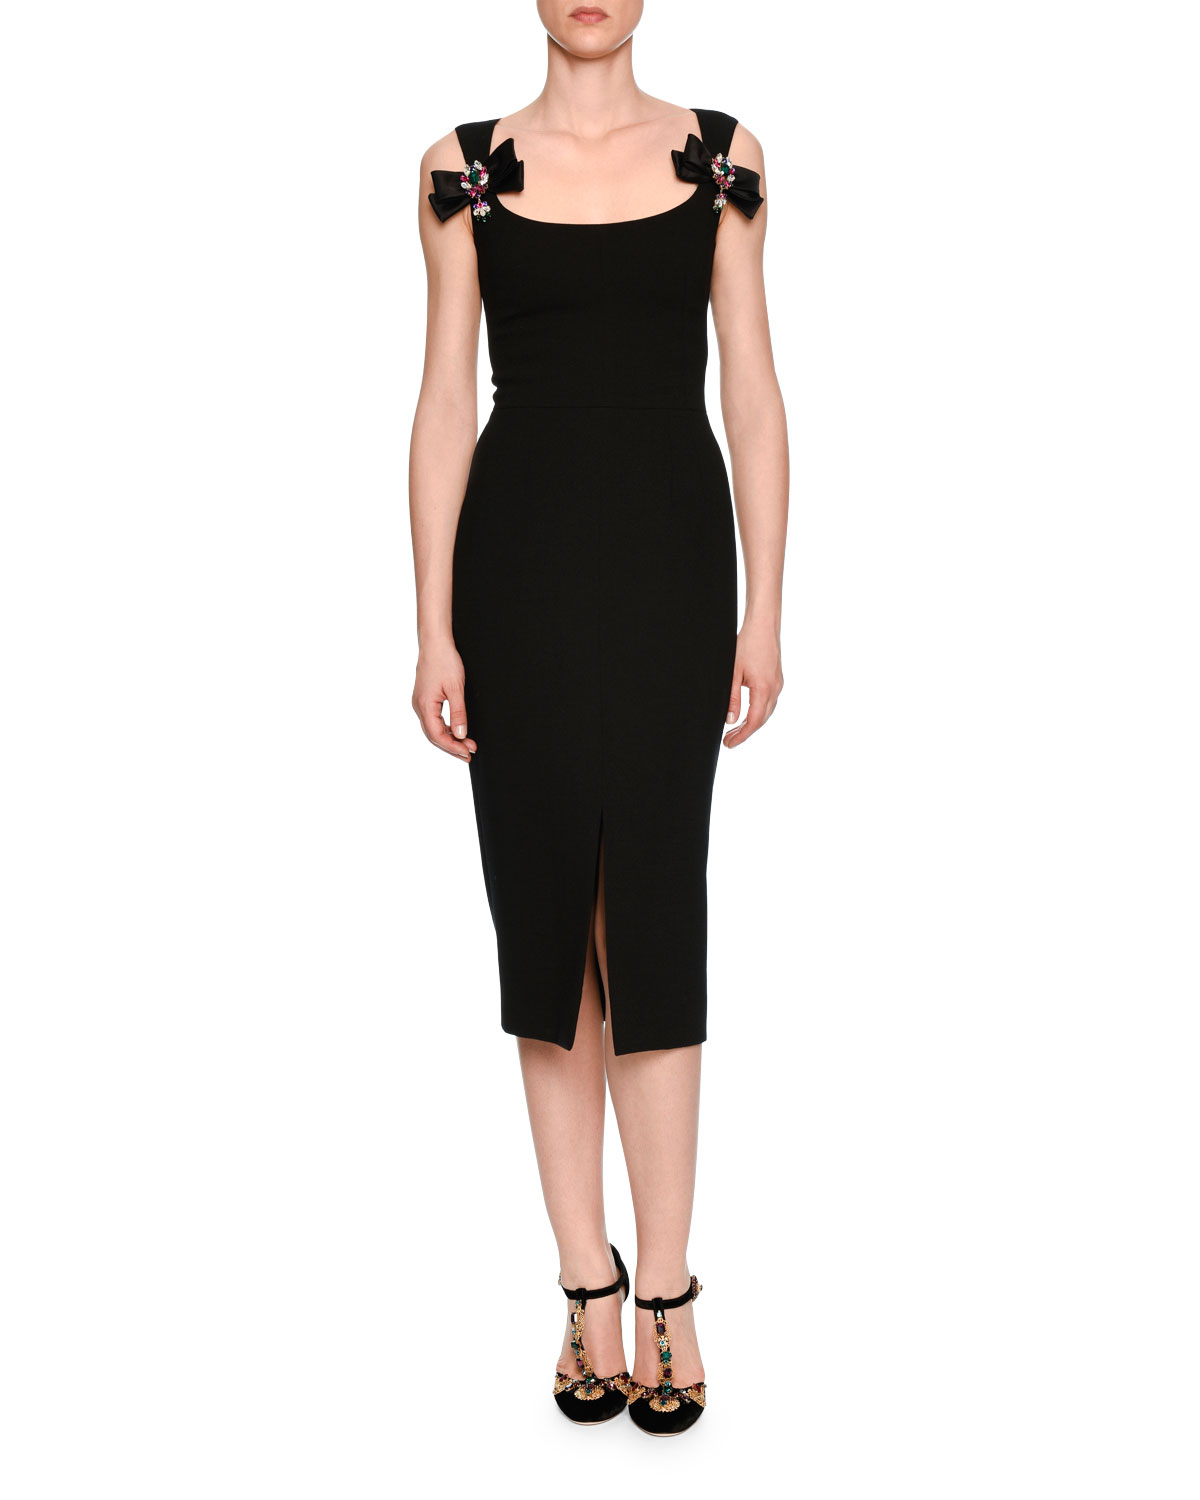 Bow-Front Scoop-Neck Cocktail Dress, Black